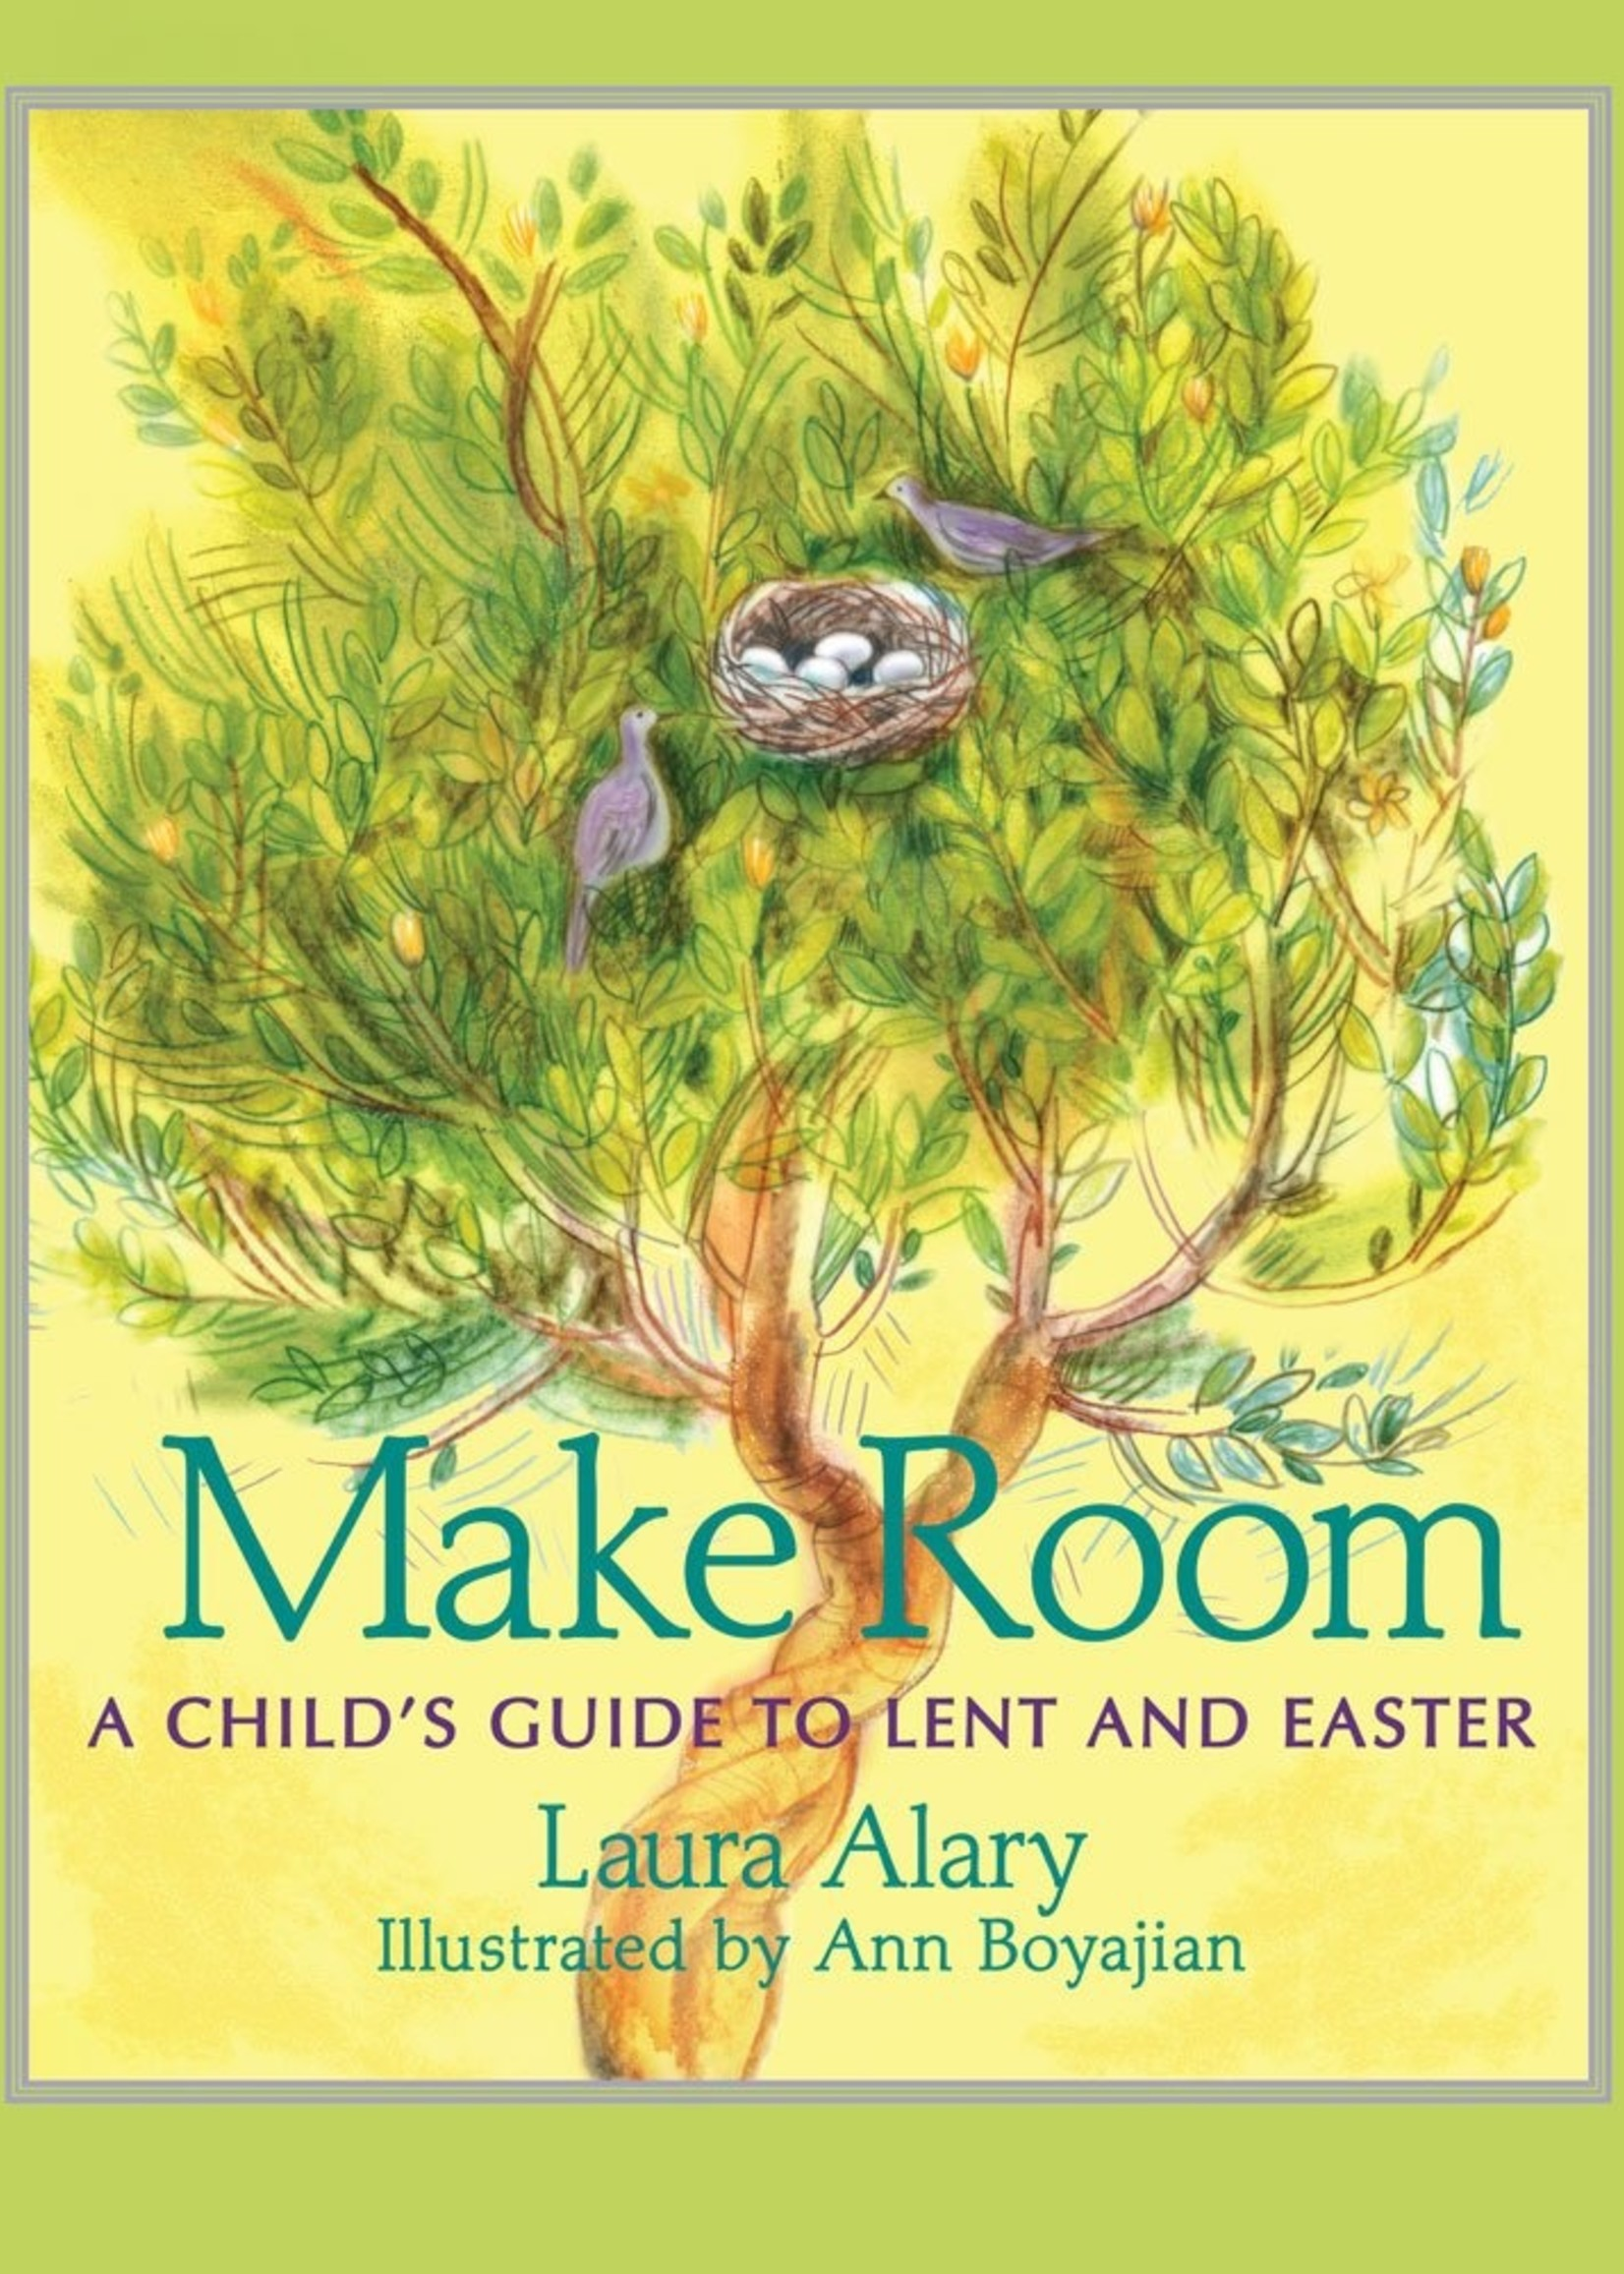 Make Room: A Child's Guide to Lent and Easter - Paperback